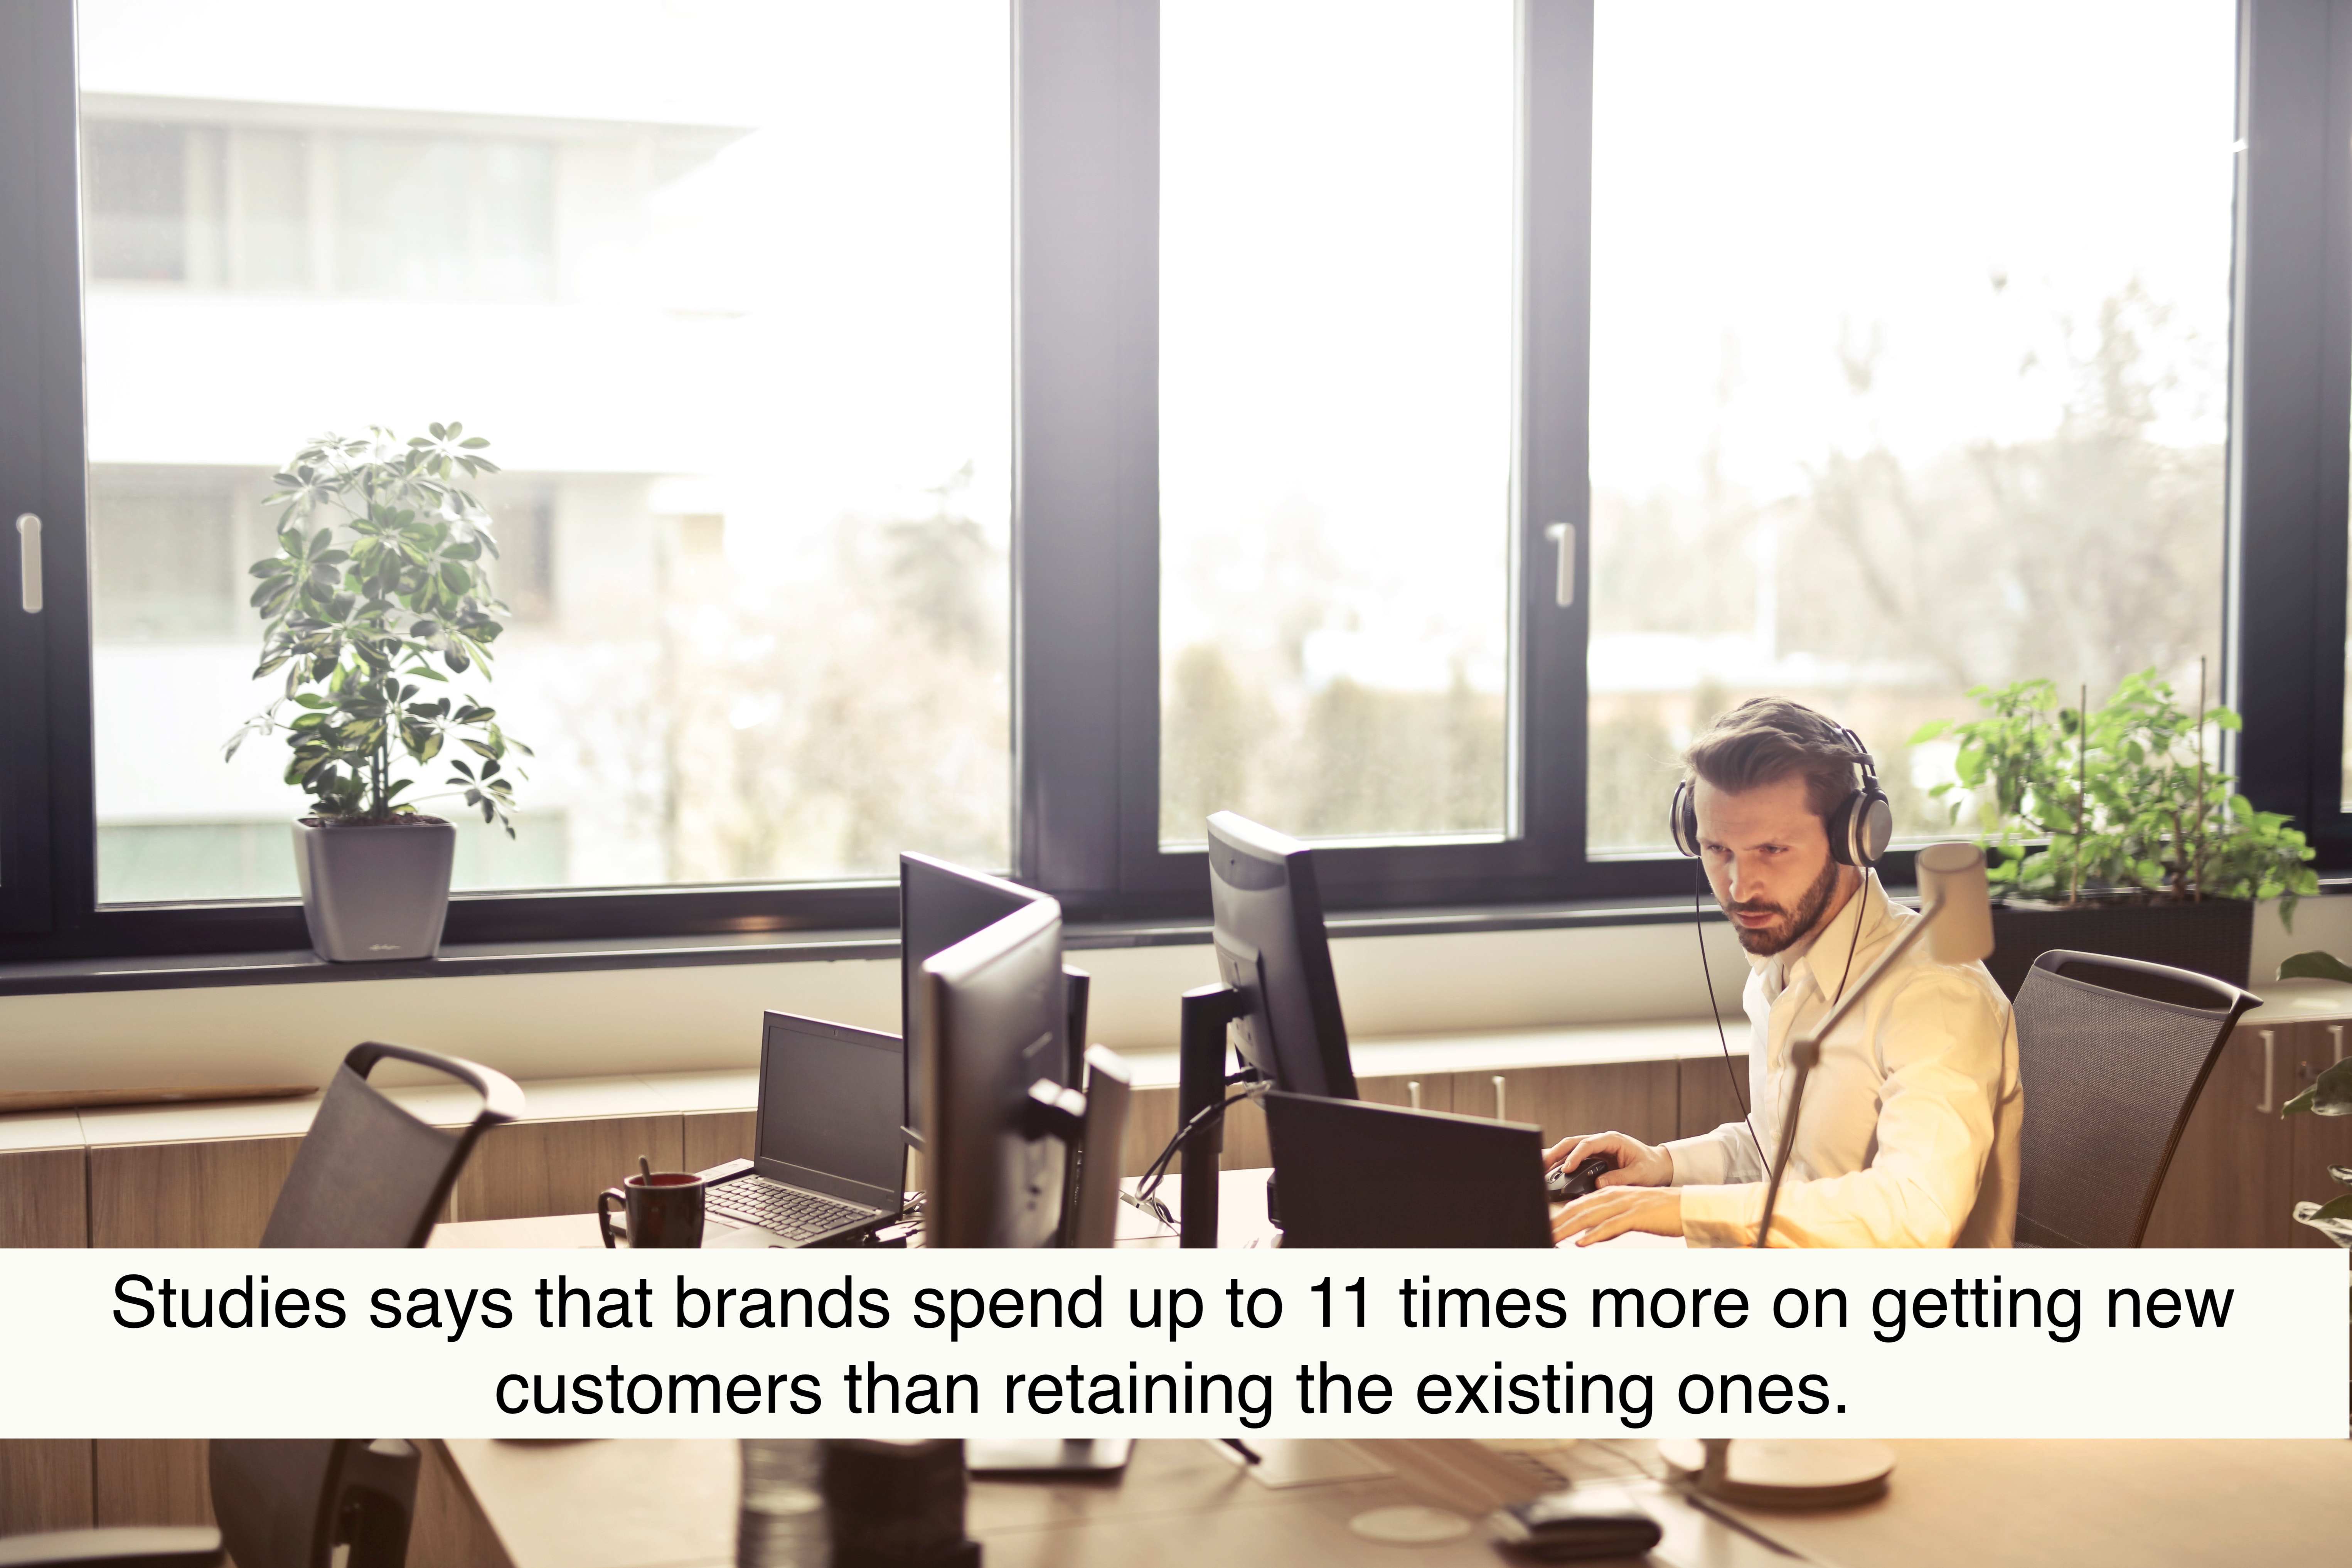 Studies says that brands spend up to 11 times more on getting new customers than retaining the existing ones.